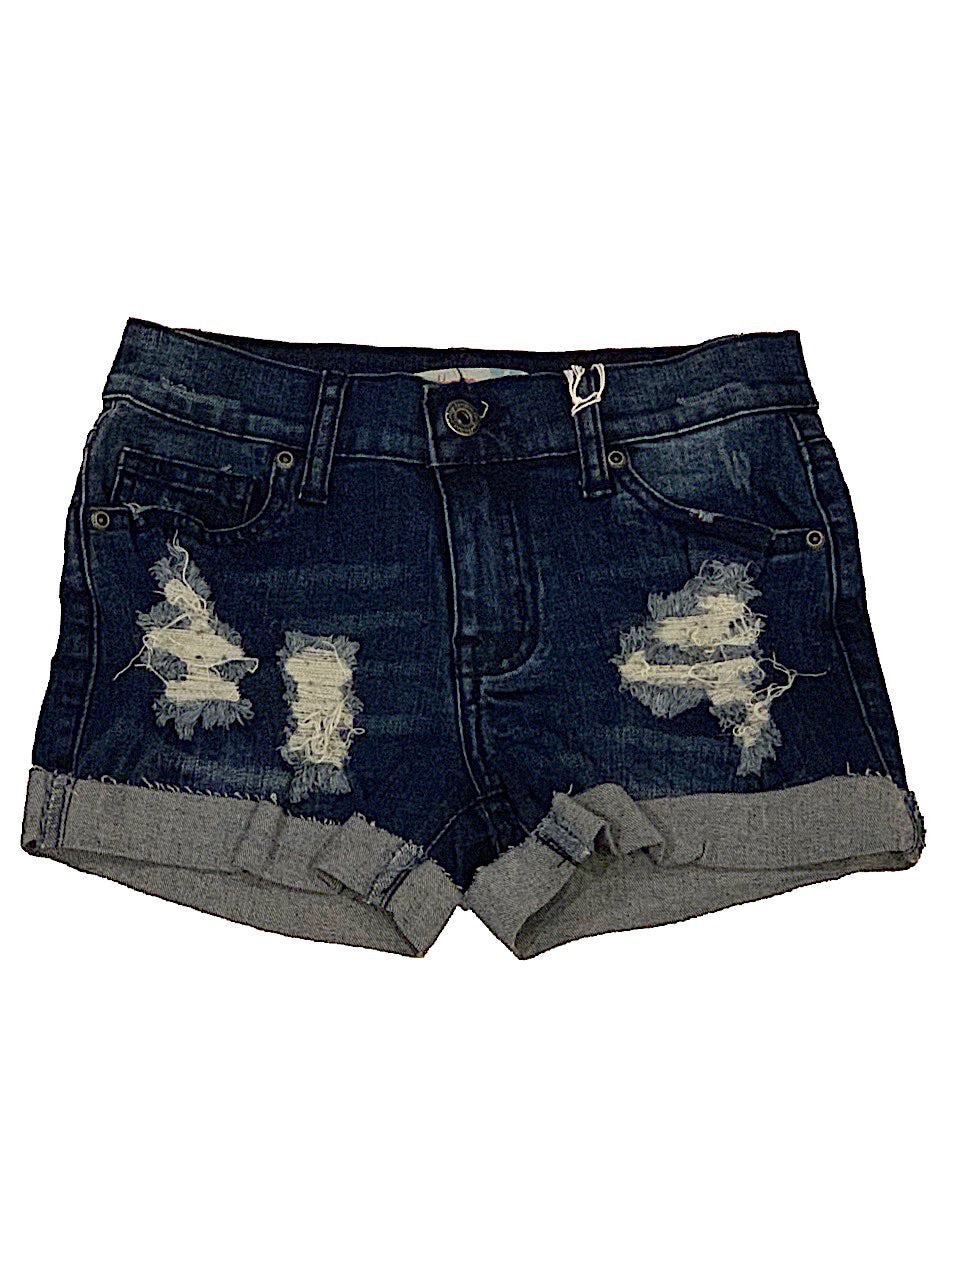 Vintage Havana Denim Shorts with Cuff Bottoms